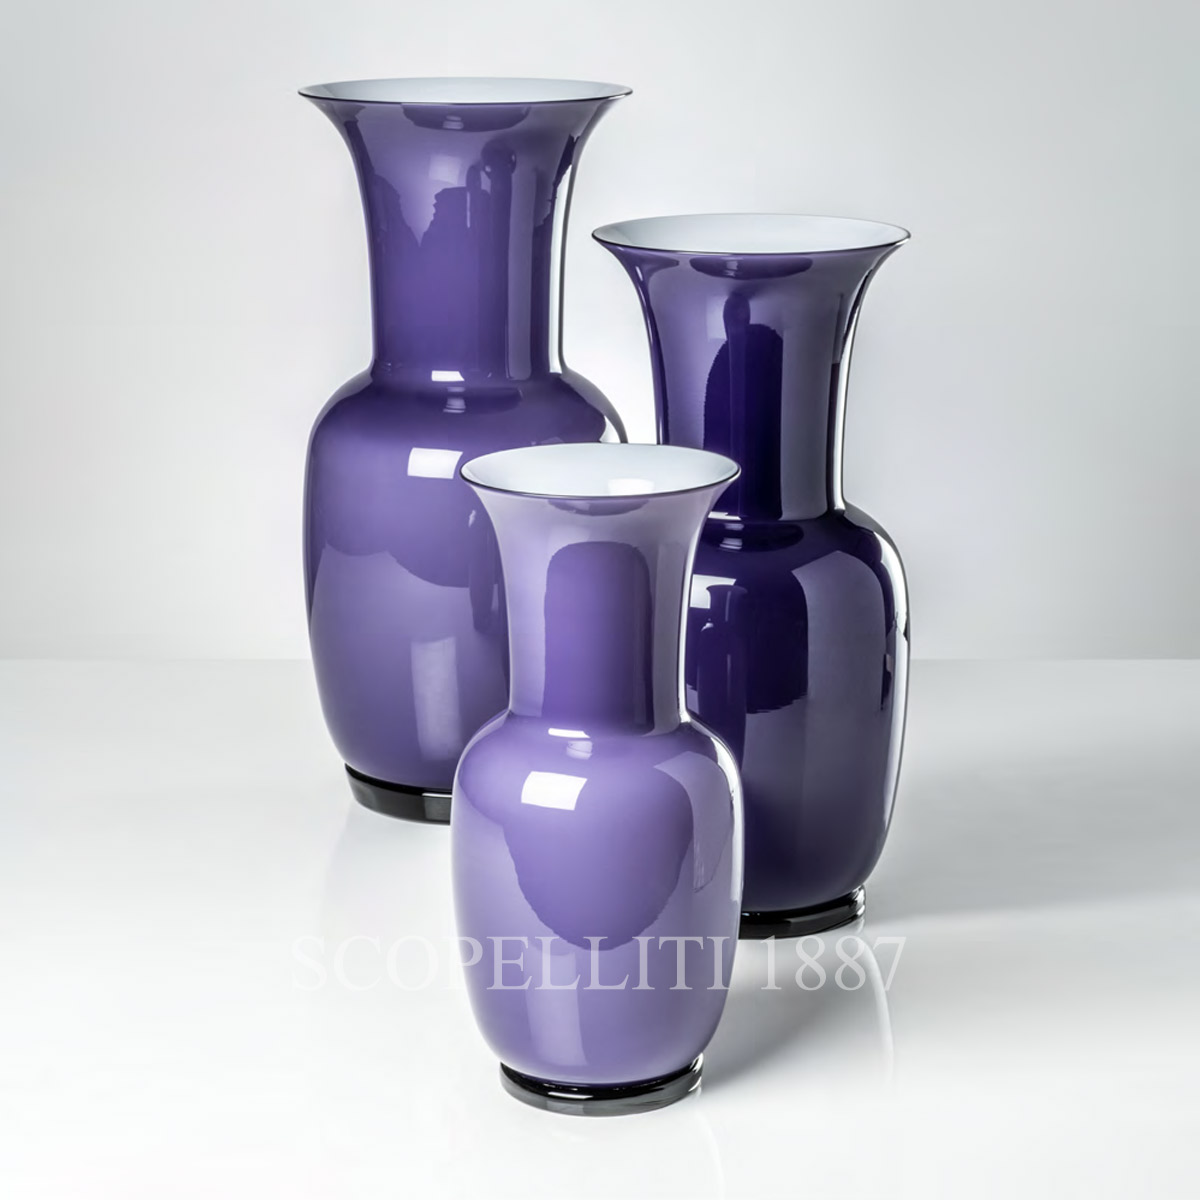 venini vase new color indigo